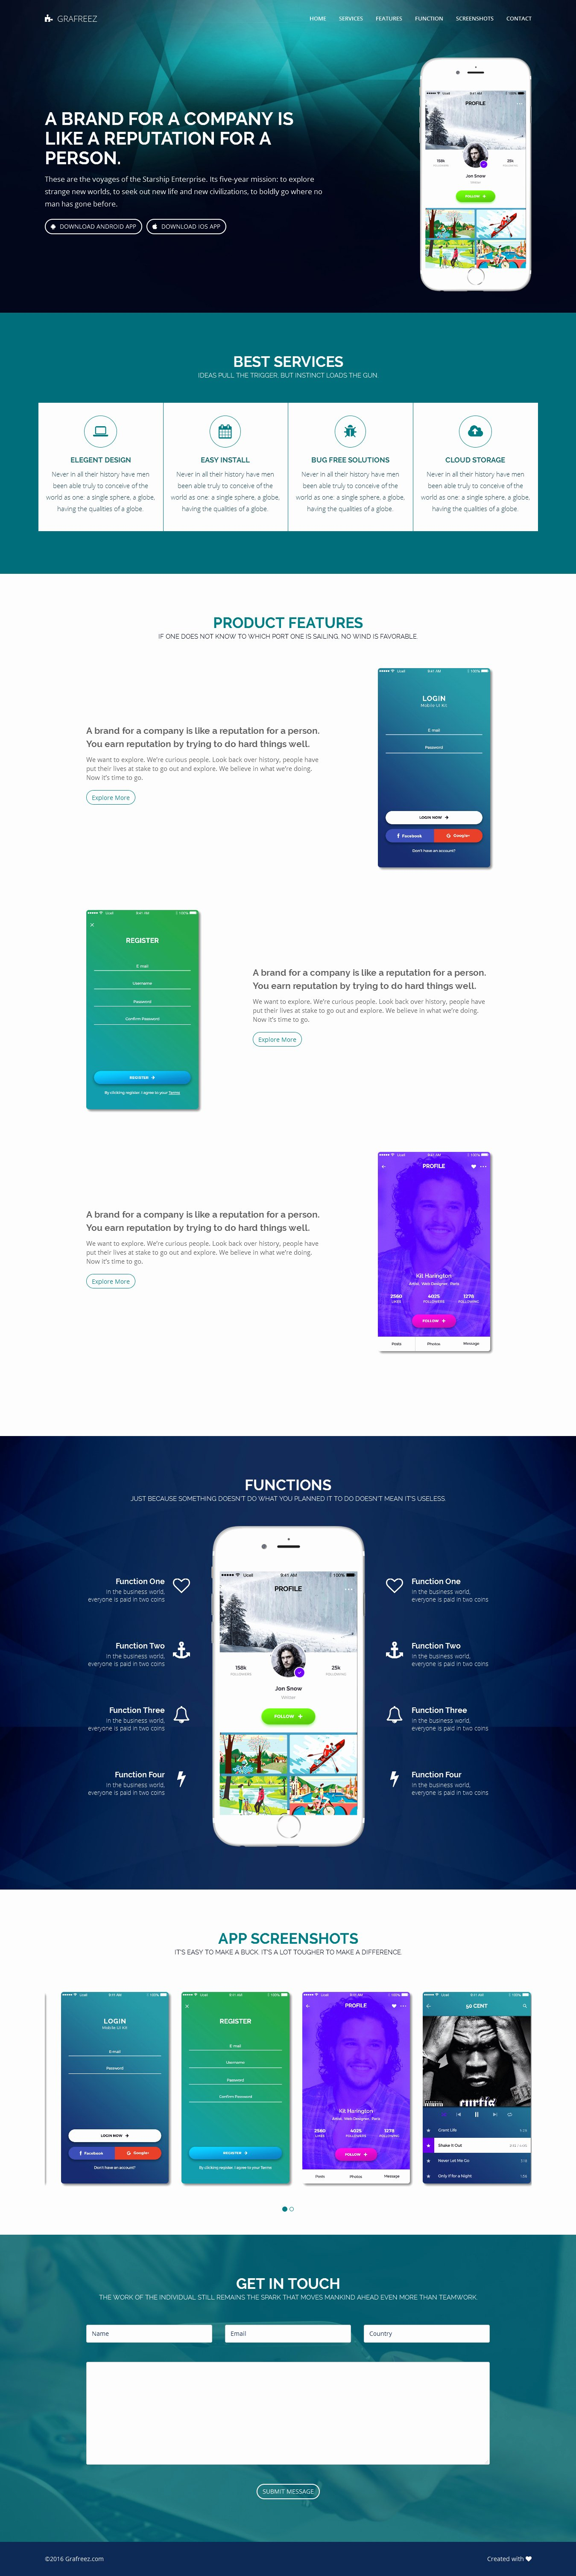 Mobile Landing Page Template Best Of Light Free Mobile App Landing Page Template HTML by